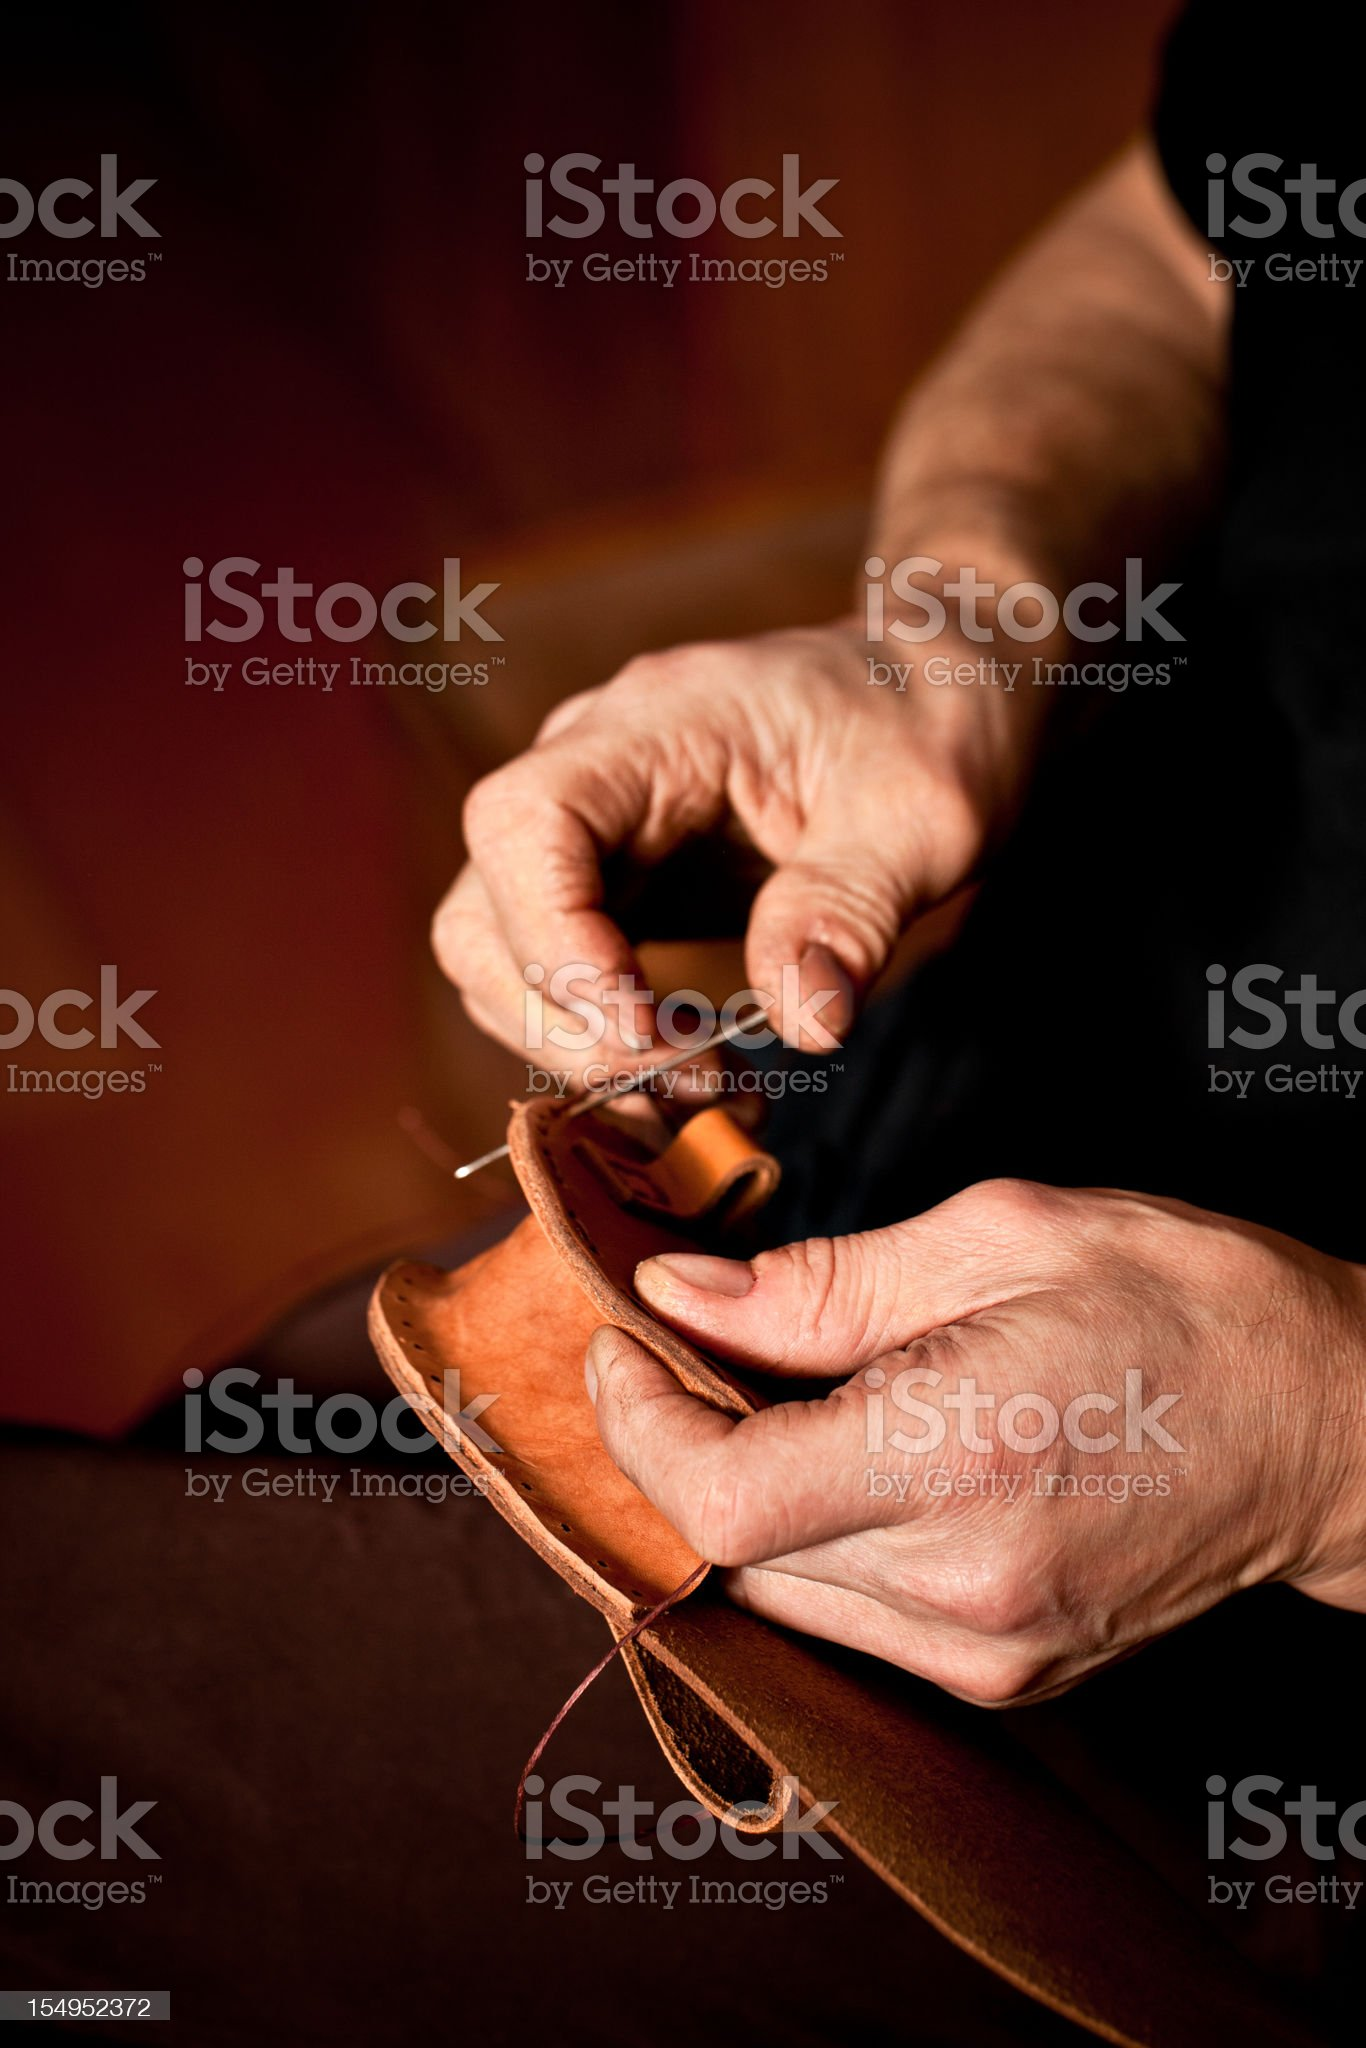 Leather manufacture royalty-free stock photo